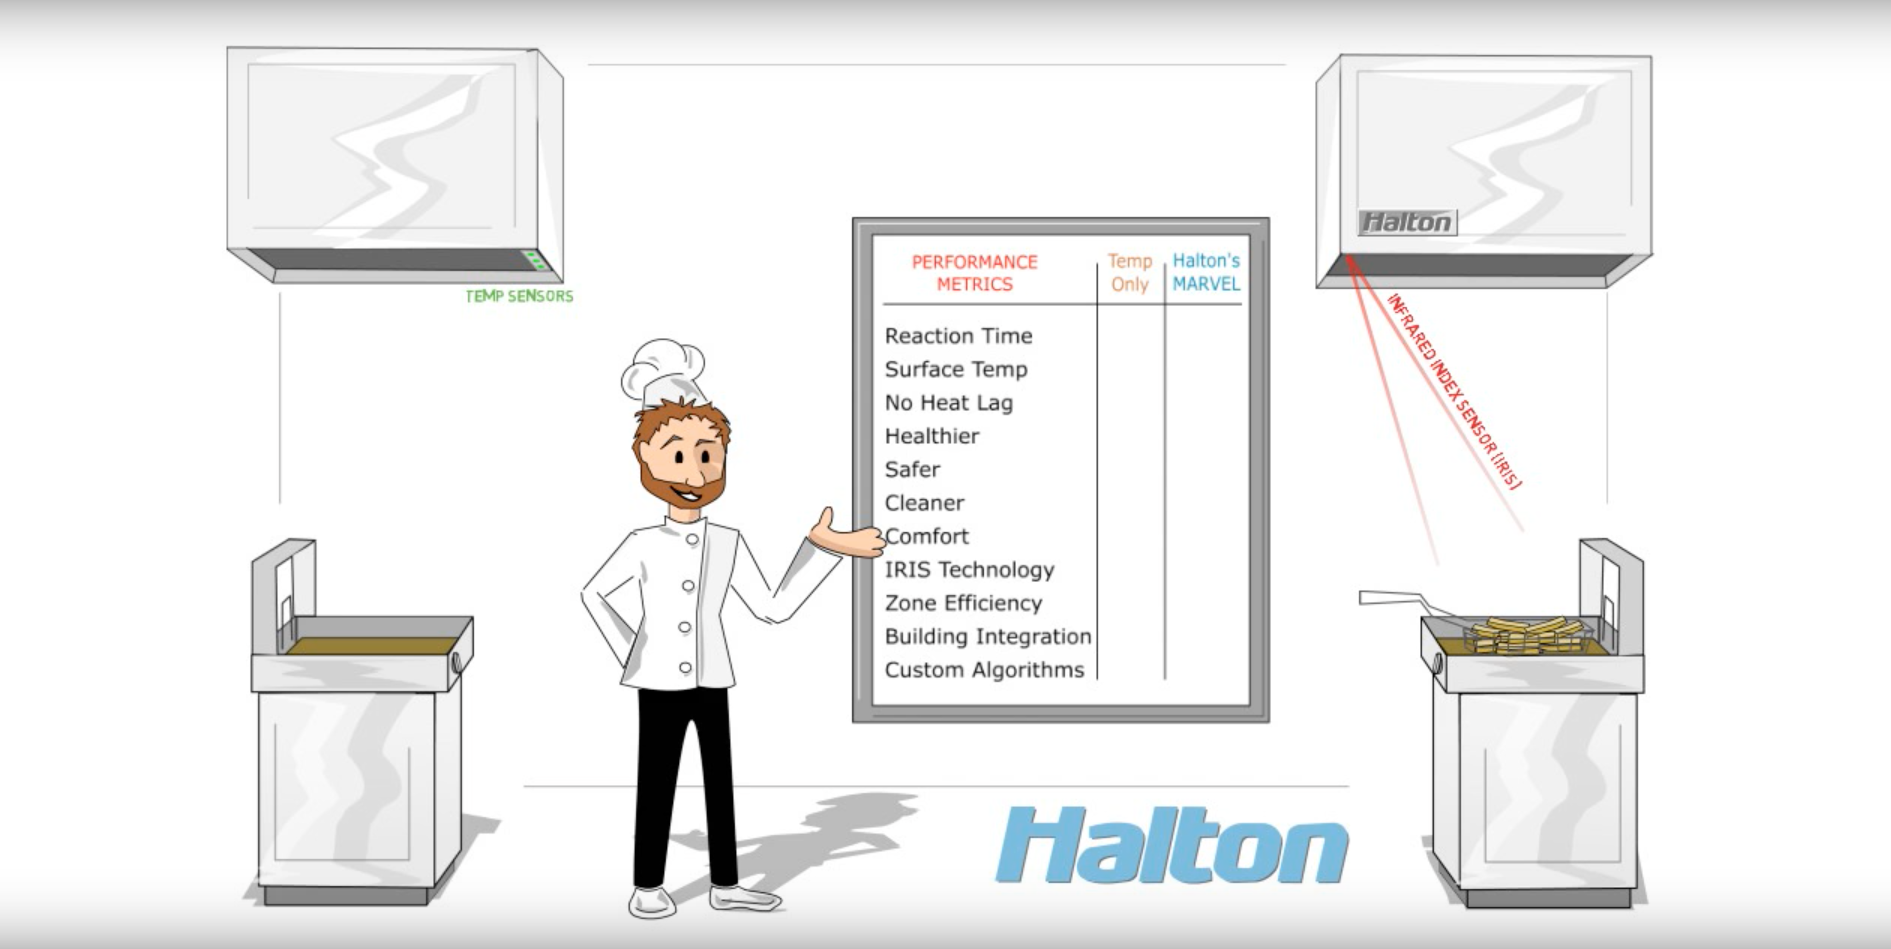 Comparing Halton's MARVEL vs Temp-Only Kitchen Ventilation Systems.png